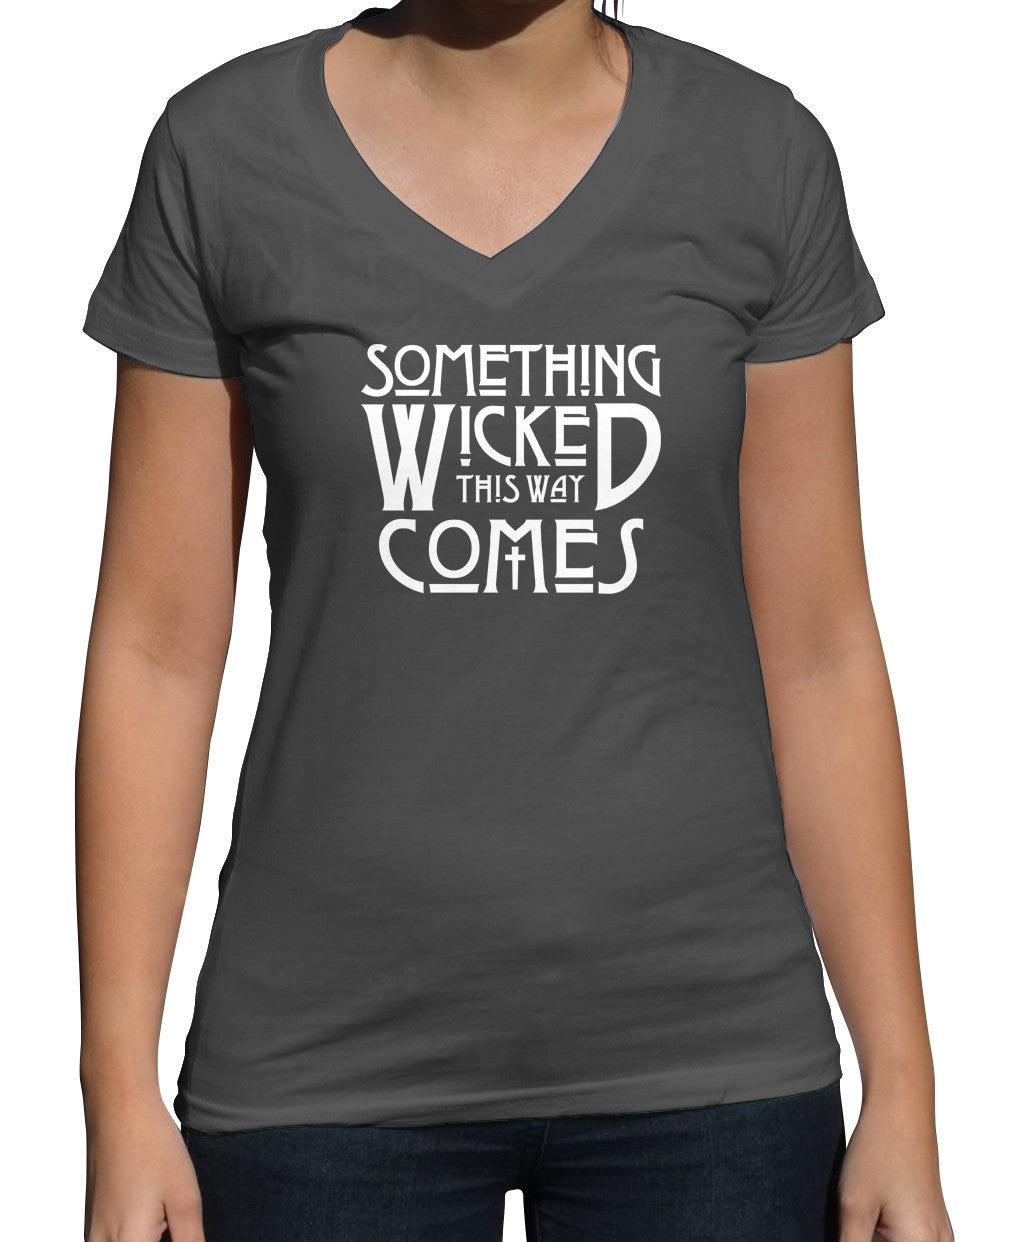 Women's Something Wicked This Way Comes Vneck T-Shirt - Juniors Fit